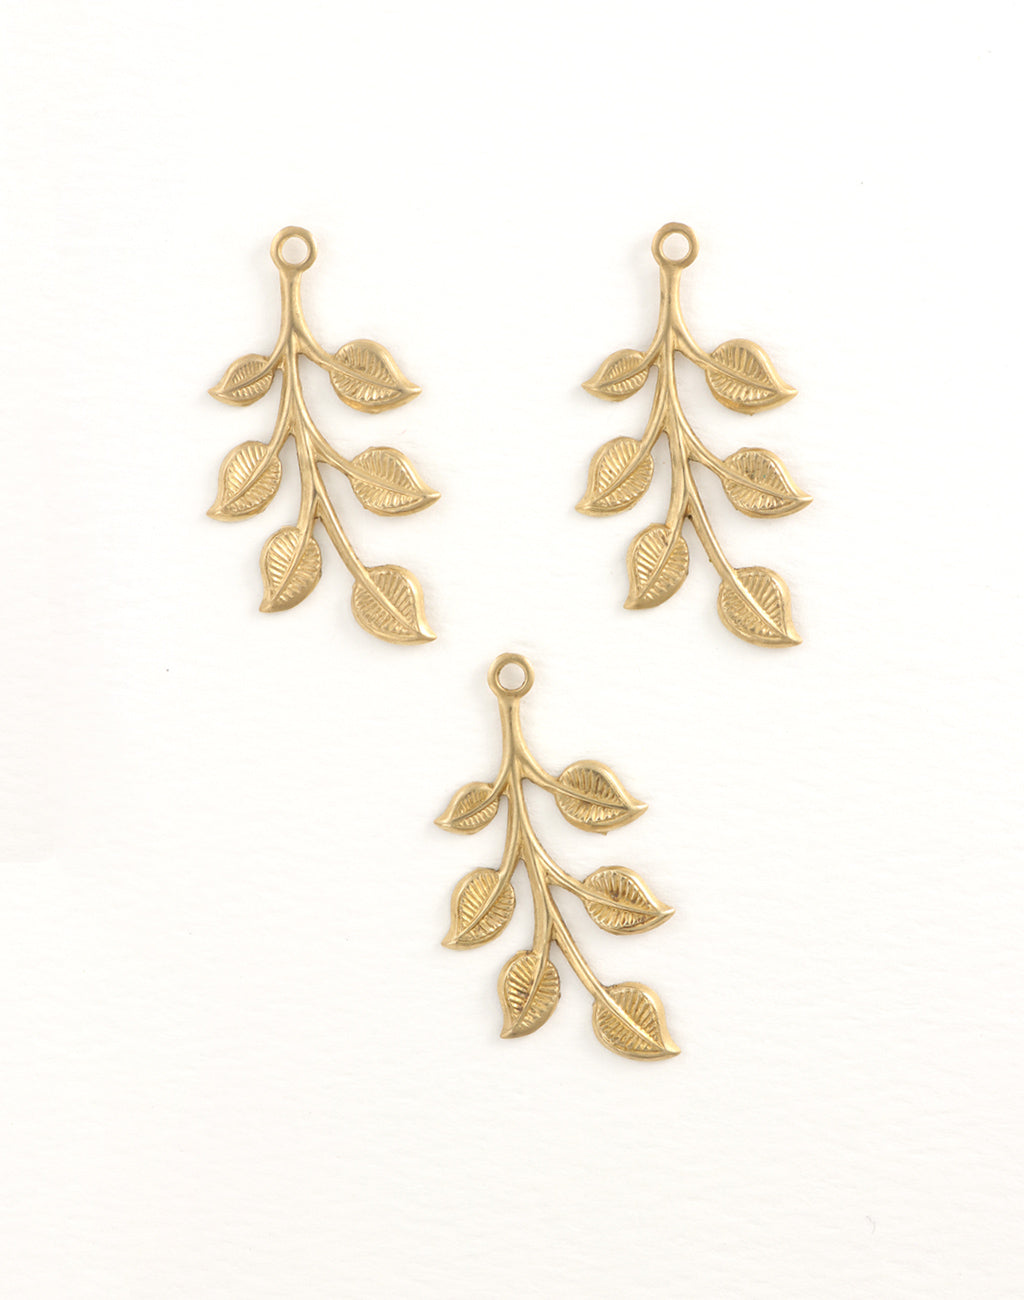 Spring Leaves, 37x18mm, (3pcs)